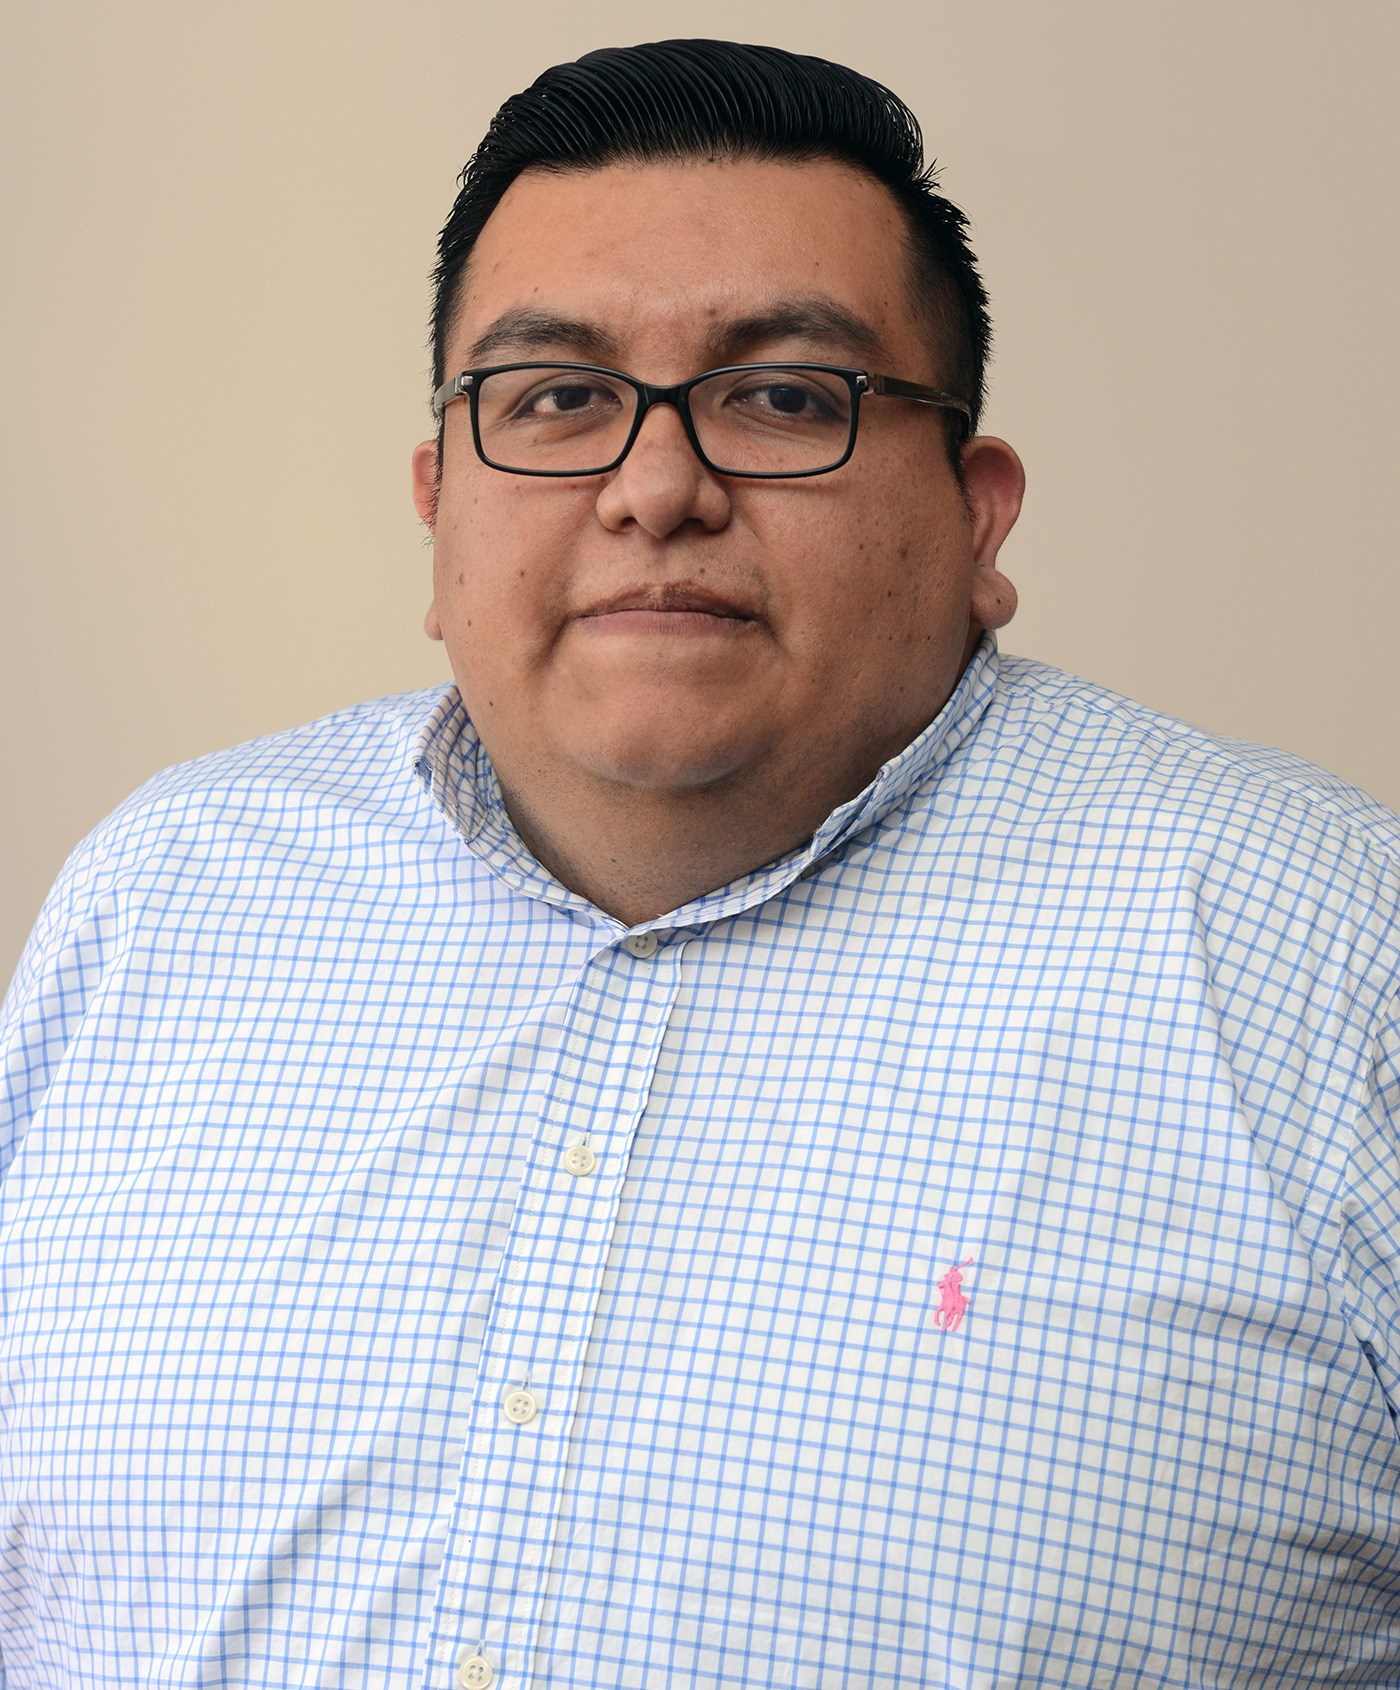 Jose Guerrero is a Data Analyst in the International Students & Scholars Office at UMass Lowell.